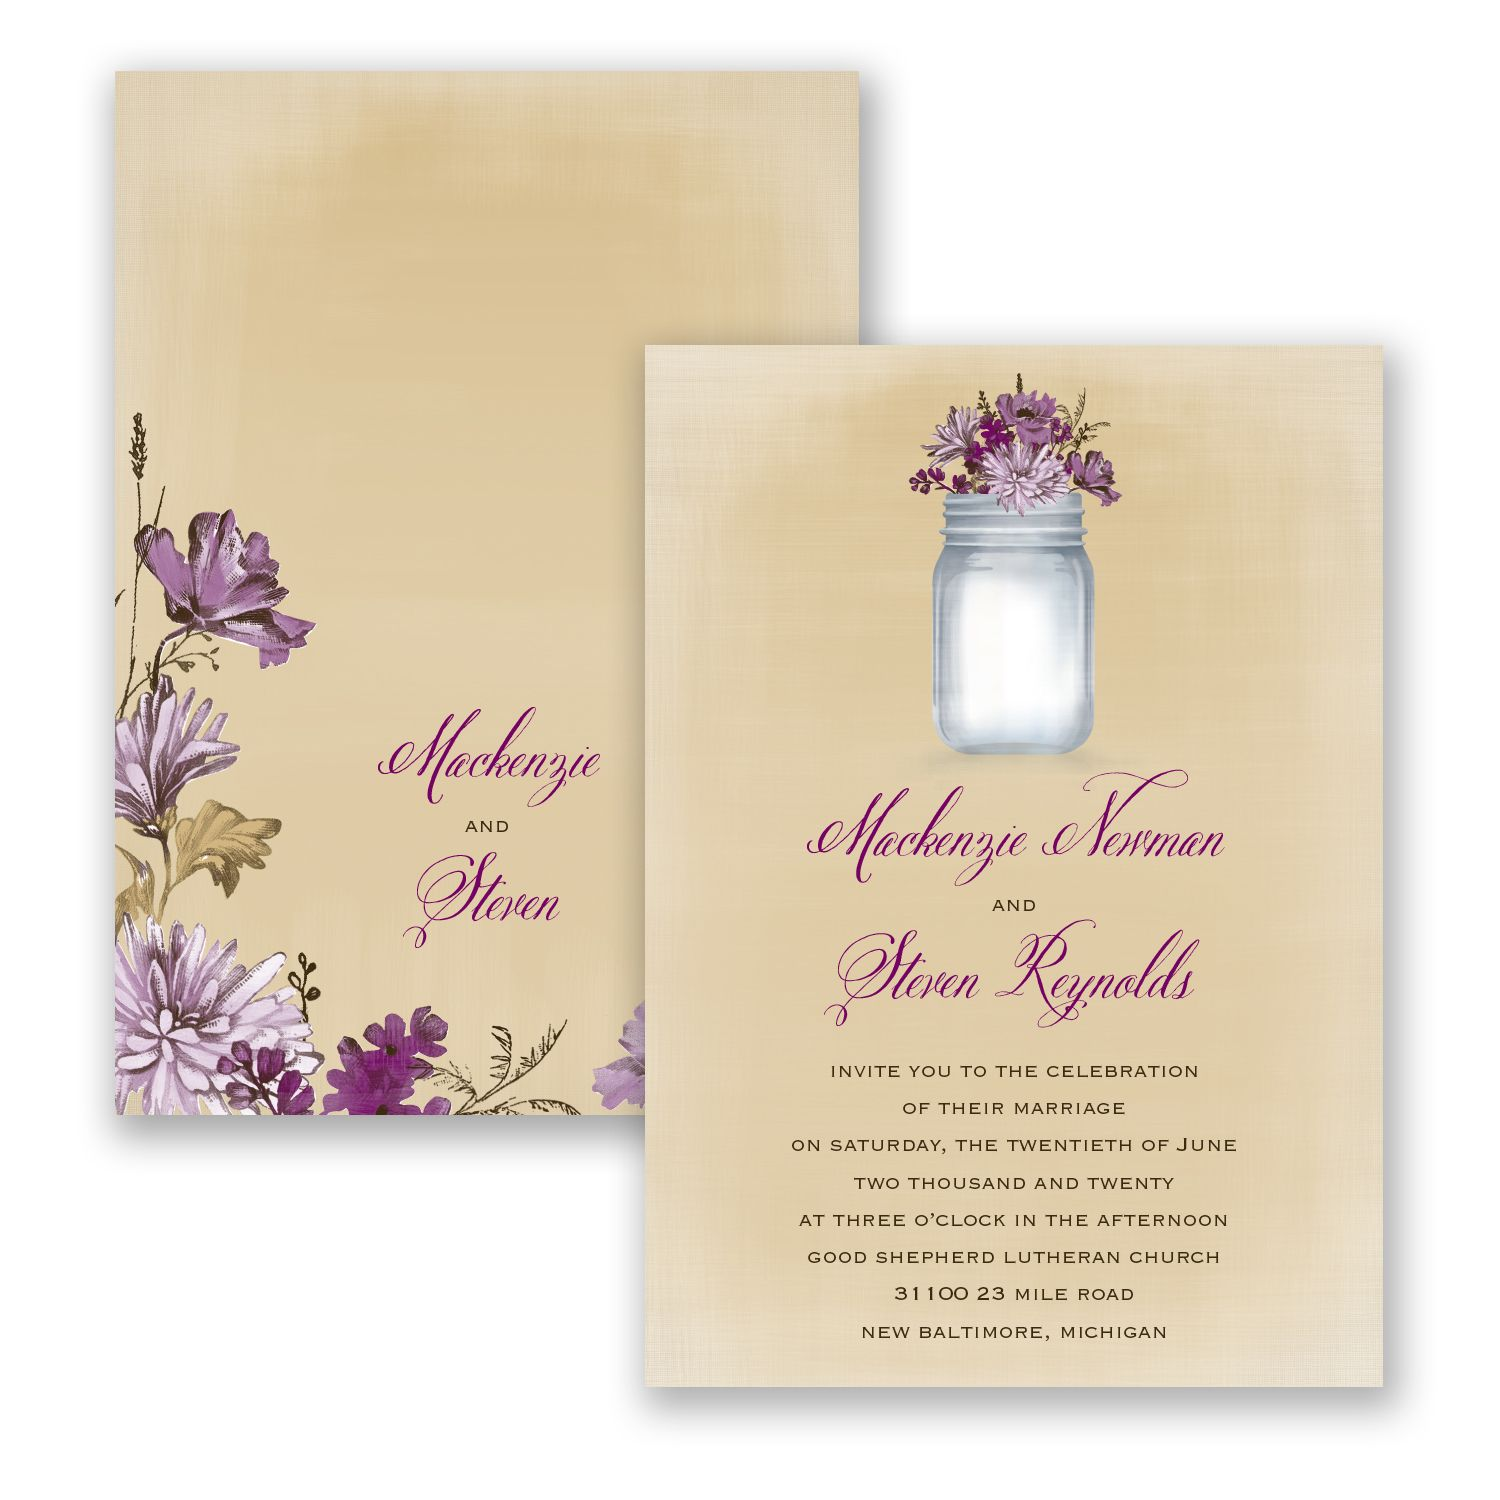 Rustic canning jar lapis invitation invitations by davids inspired by vintage and country flair this davids bridal wedding invitation features an antique canning jar filled with blooms to set the tone for your monicamarmolfo Gallery